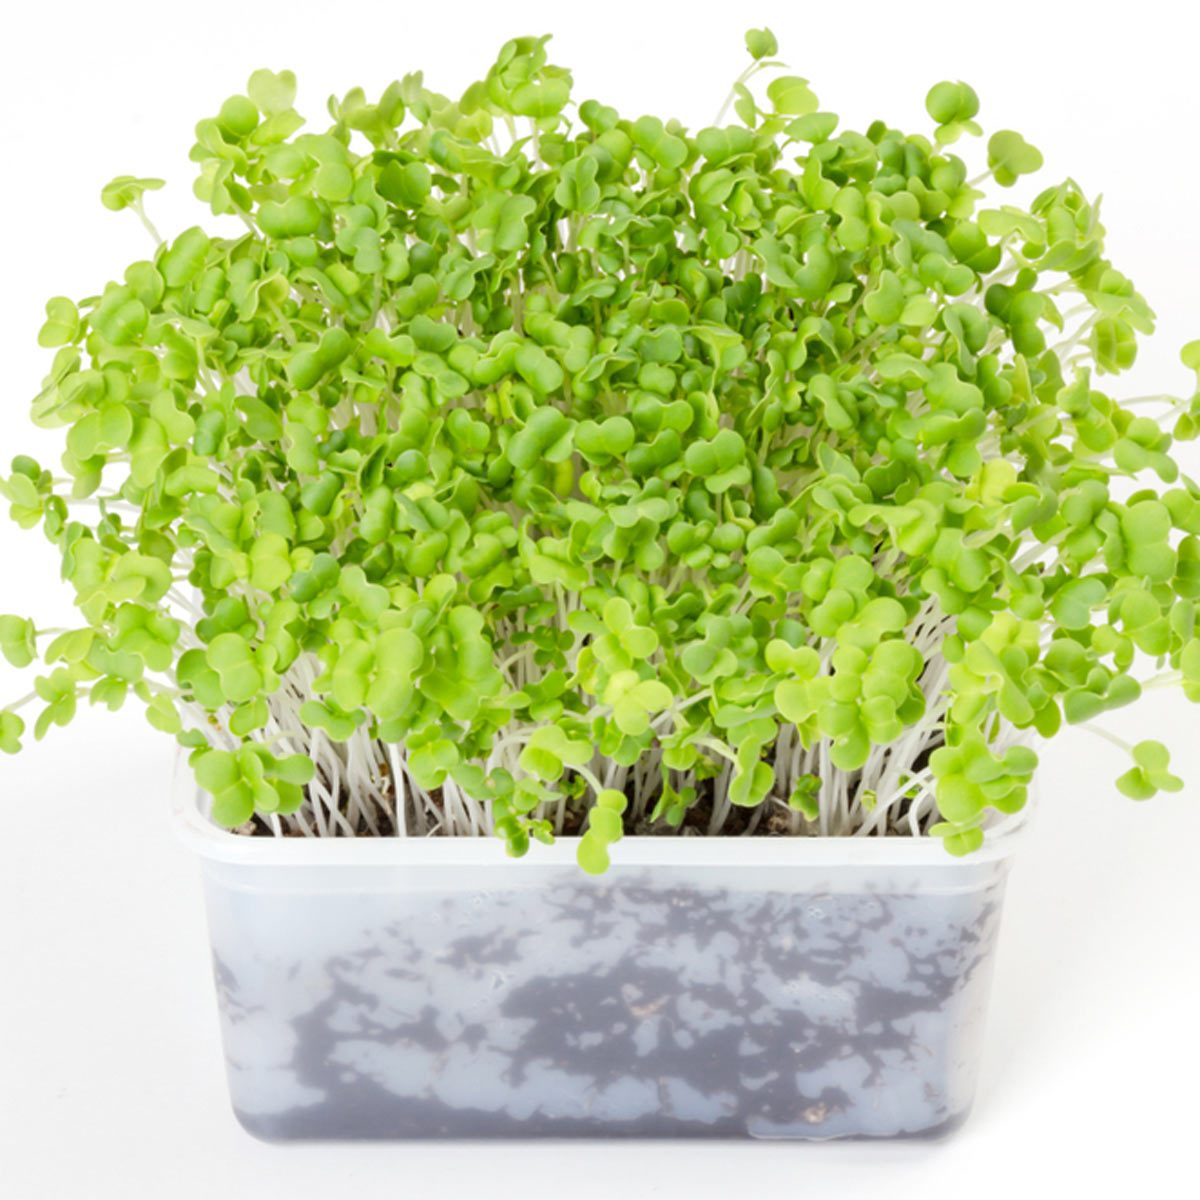 microgreens sprouts growing veggies